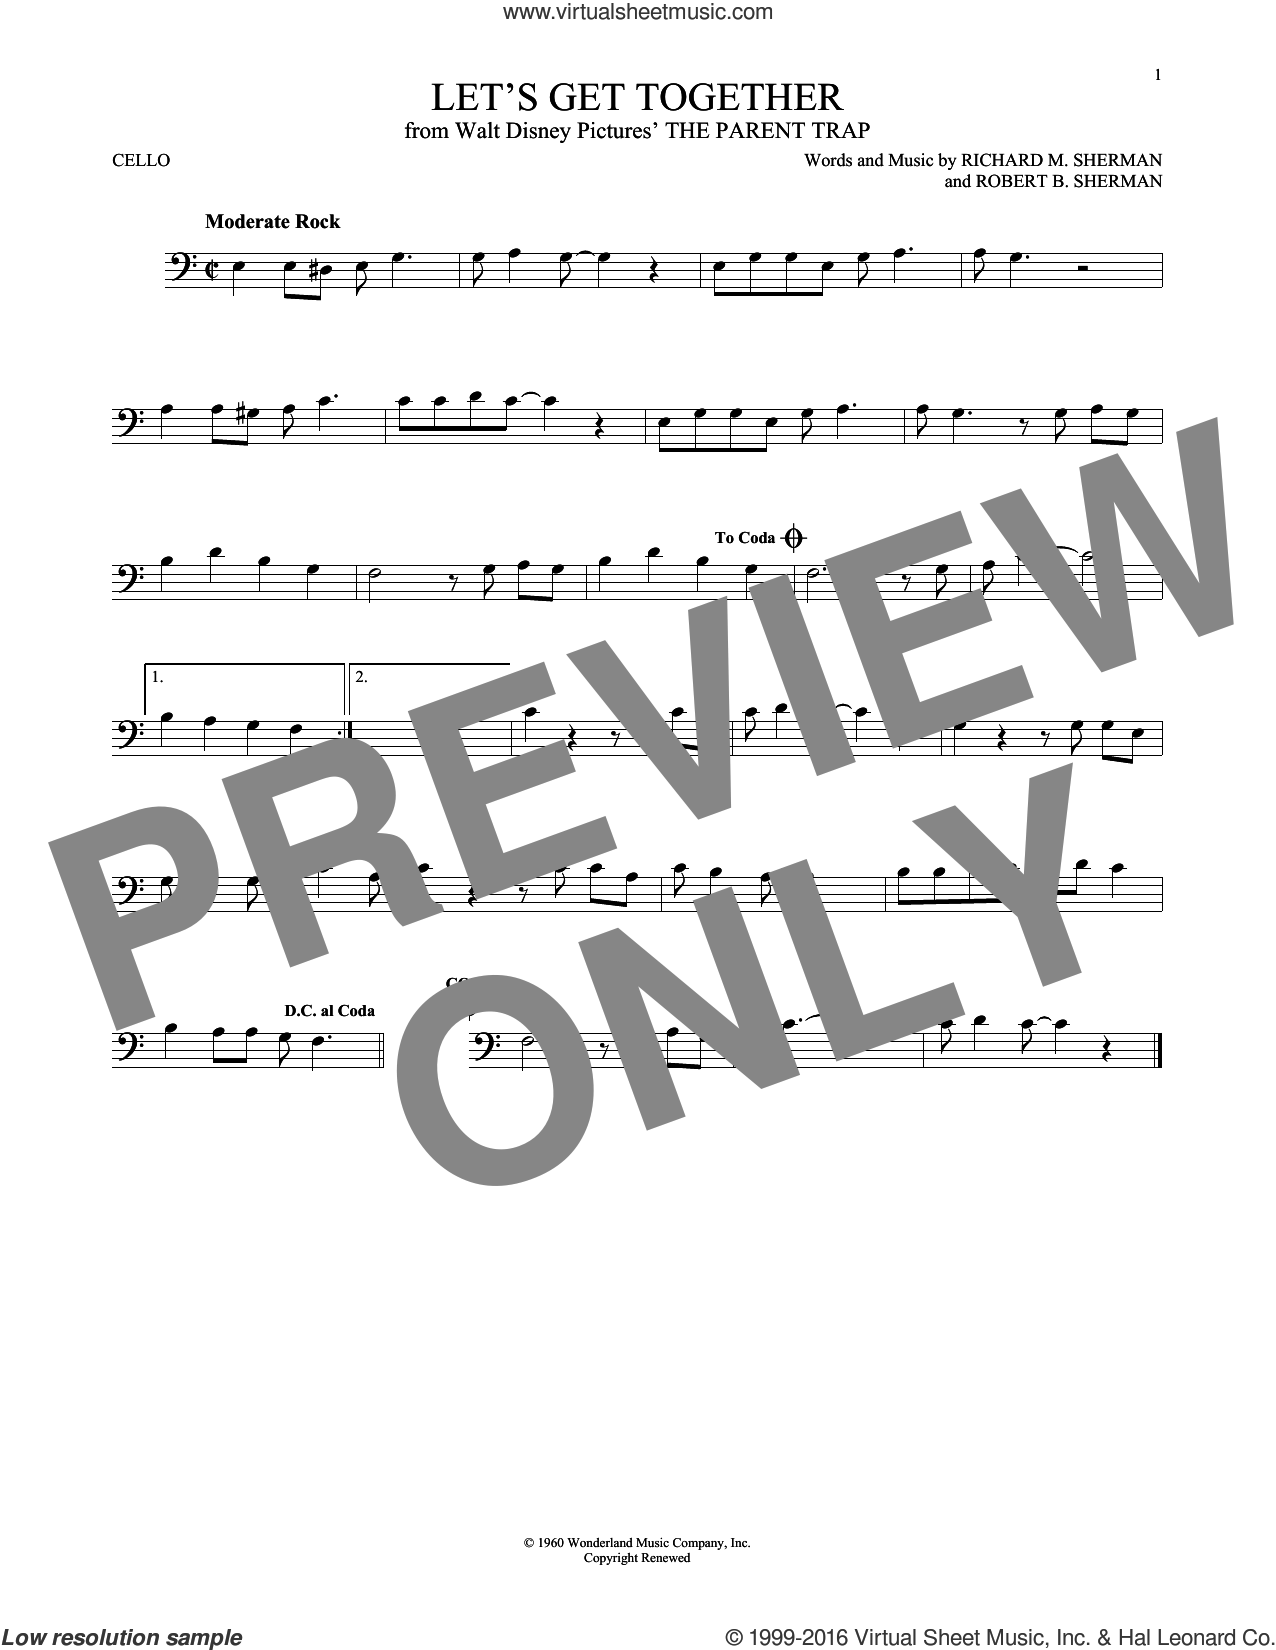 Let's Get Together sheet music for cello solo by Hayley Mills, Richard M. Sherman and Robert B. Sherman, intermediate